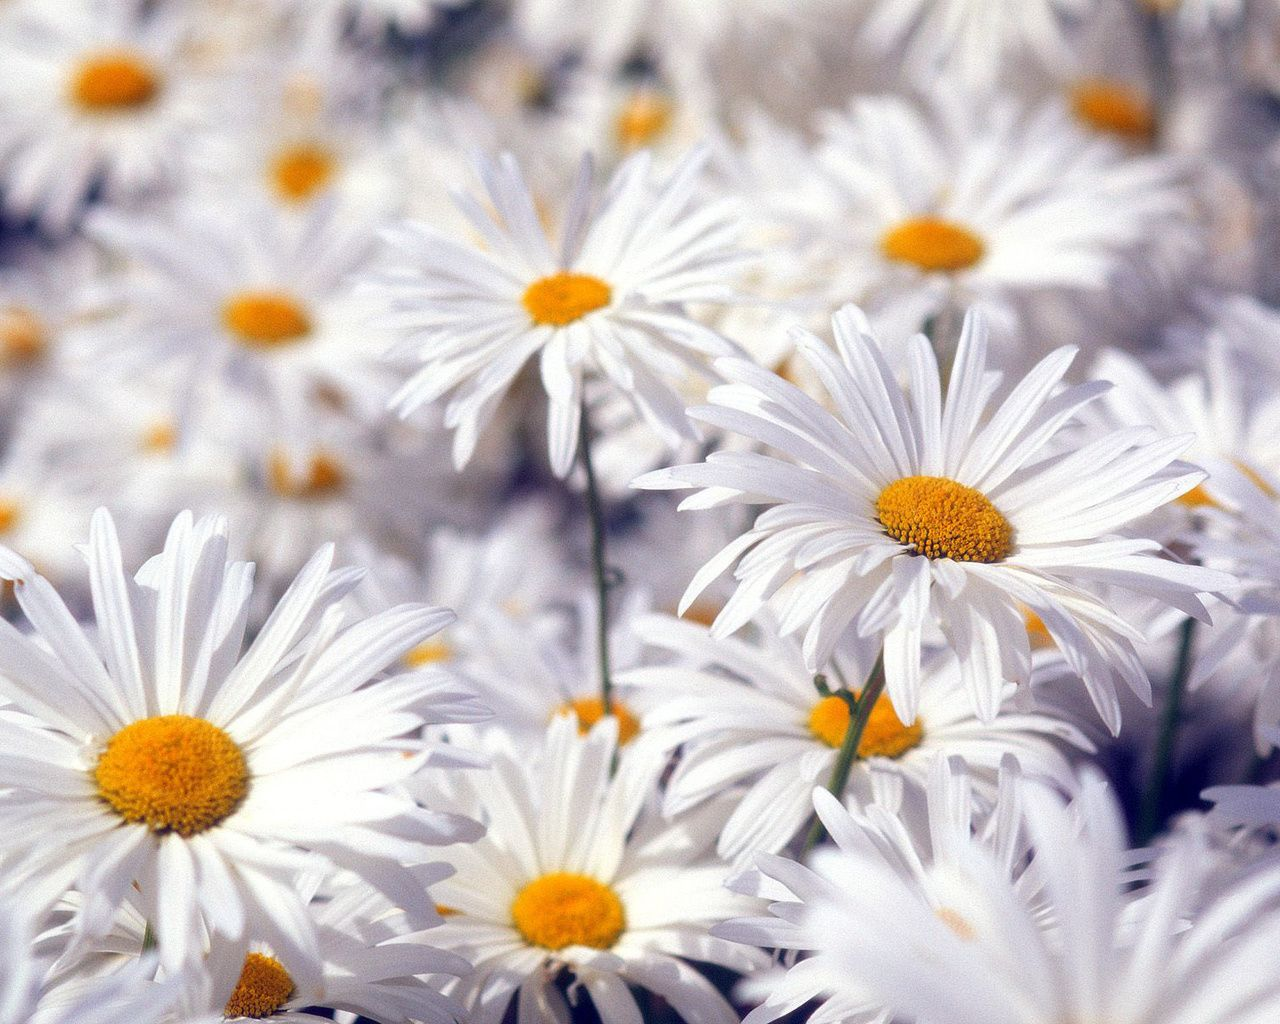 100 types of the most beautiful white flowers for your garden types of white flowers white is taken into consideration as a binding and mirroring shade izmirmasajfo